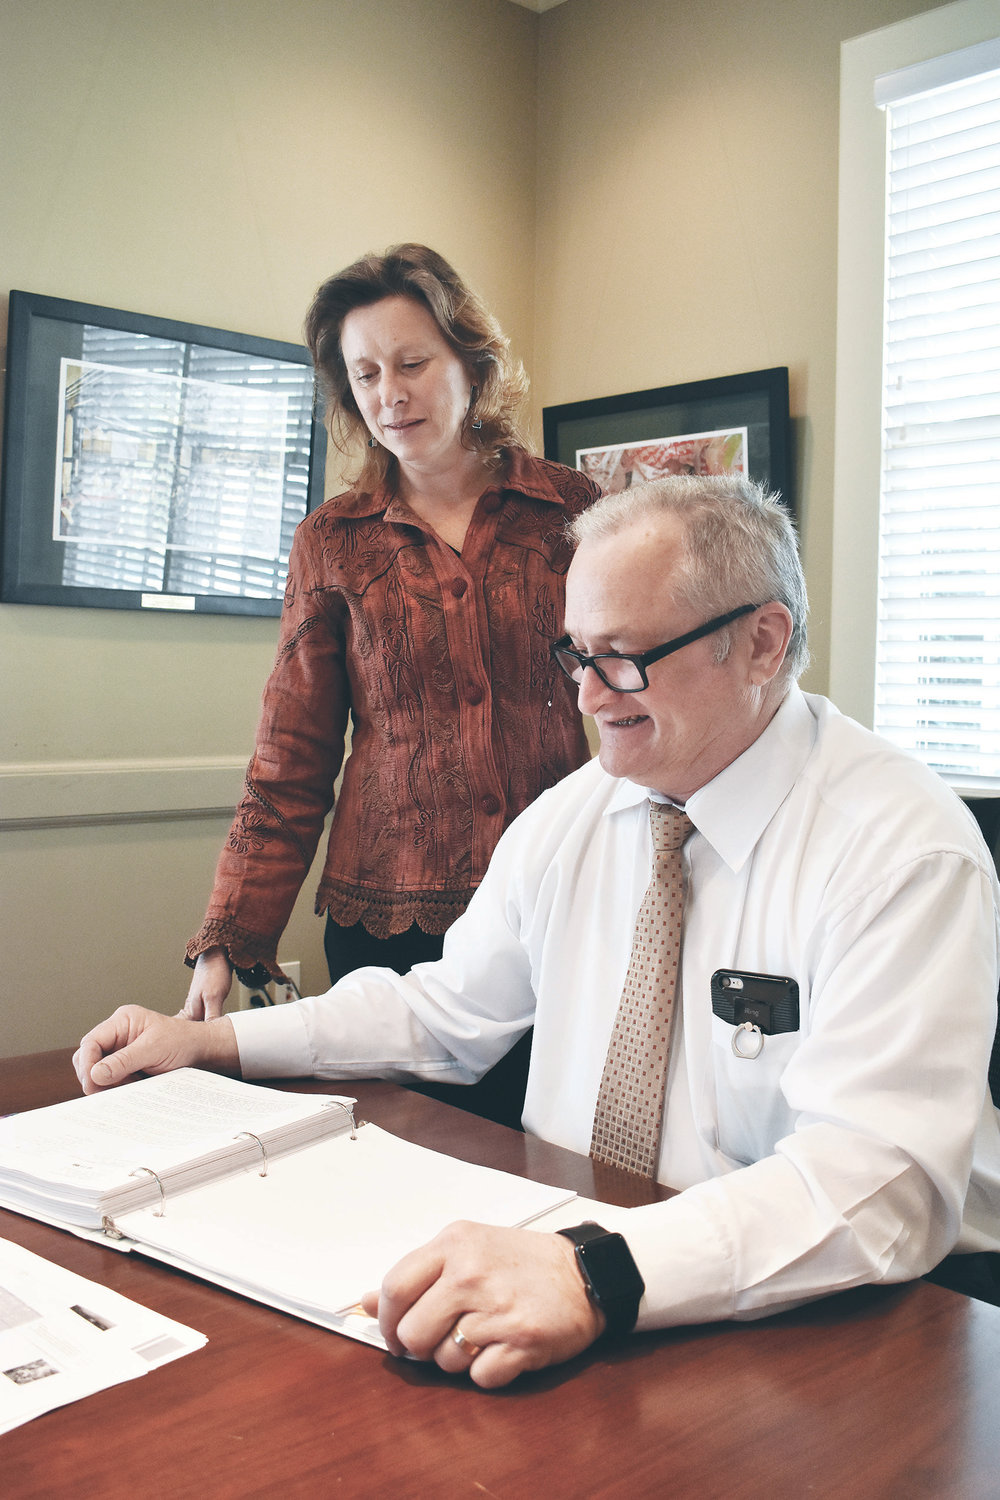 Kellie Johnston, left, executive director of Cawaco Resource Conservation & Development (RC&D) Council, Inc., and Paul Kennedy, a member of Cawaco's board of directors, look over plans in Jasper Monday. The organization has announced its grants for Fiscal 2019.